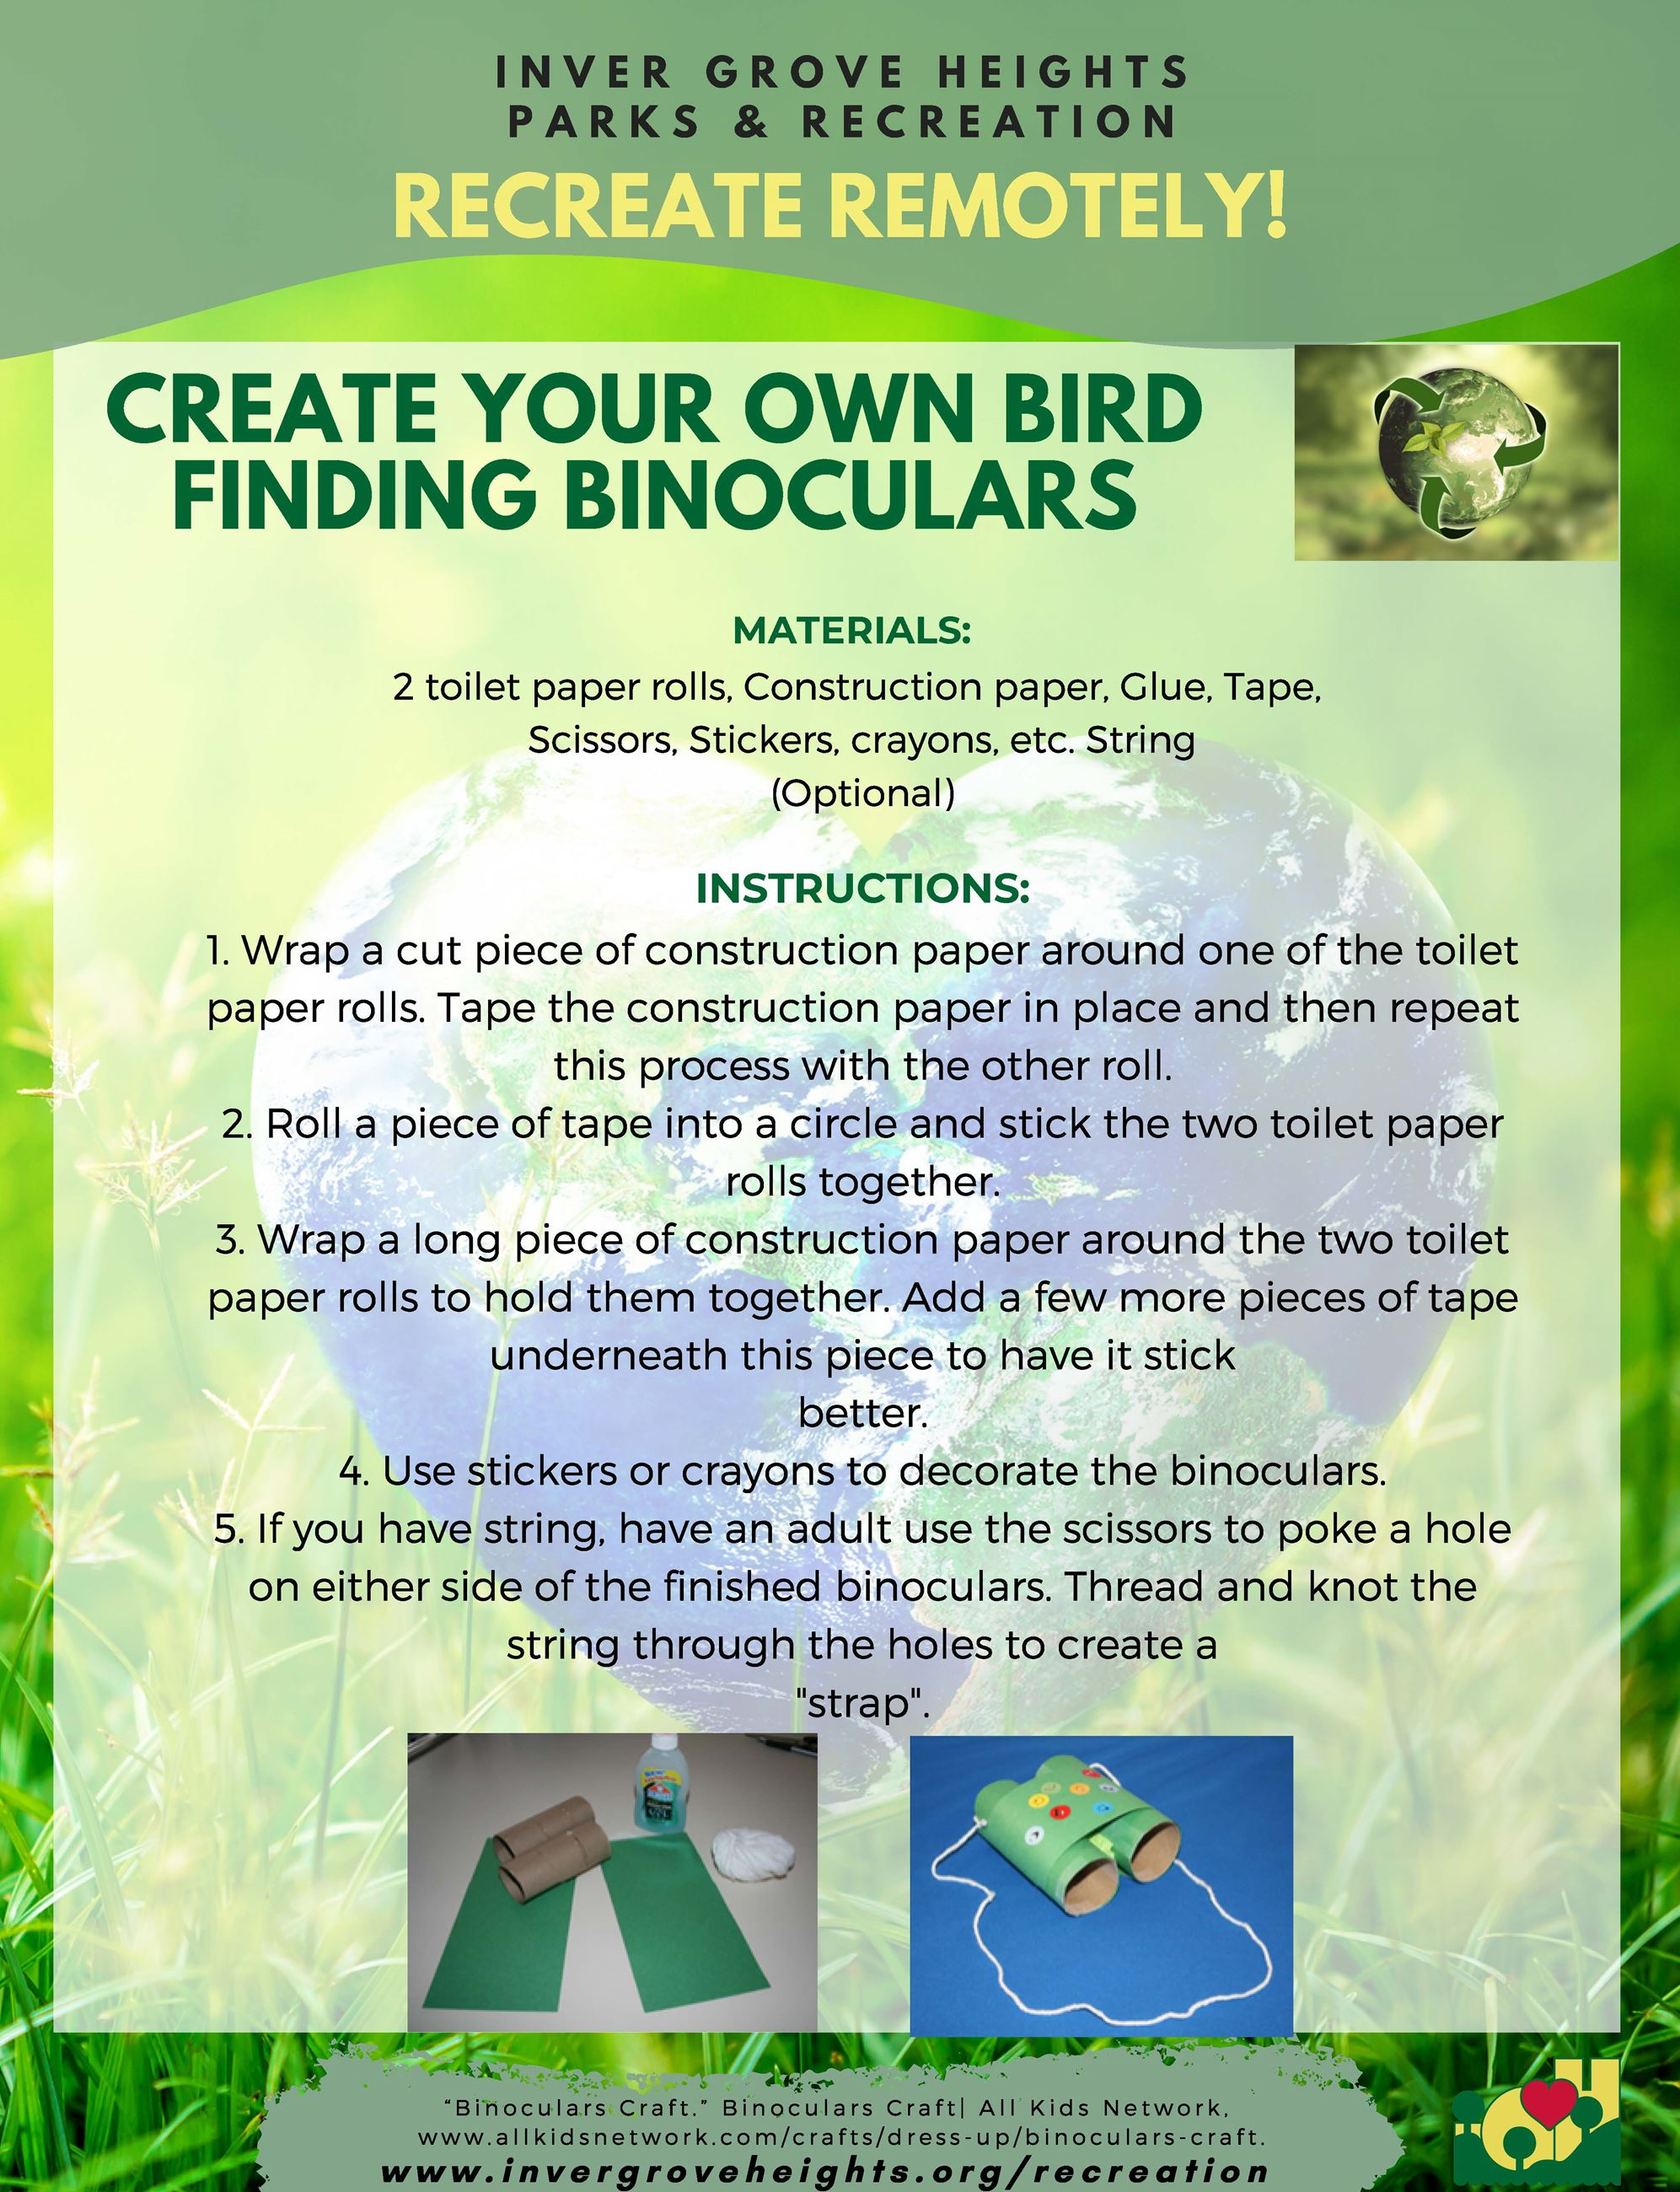 Recreate Remotely 2020 Template - 8.5x11 - EarthDay activities - bird watching